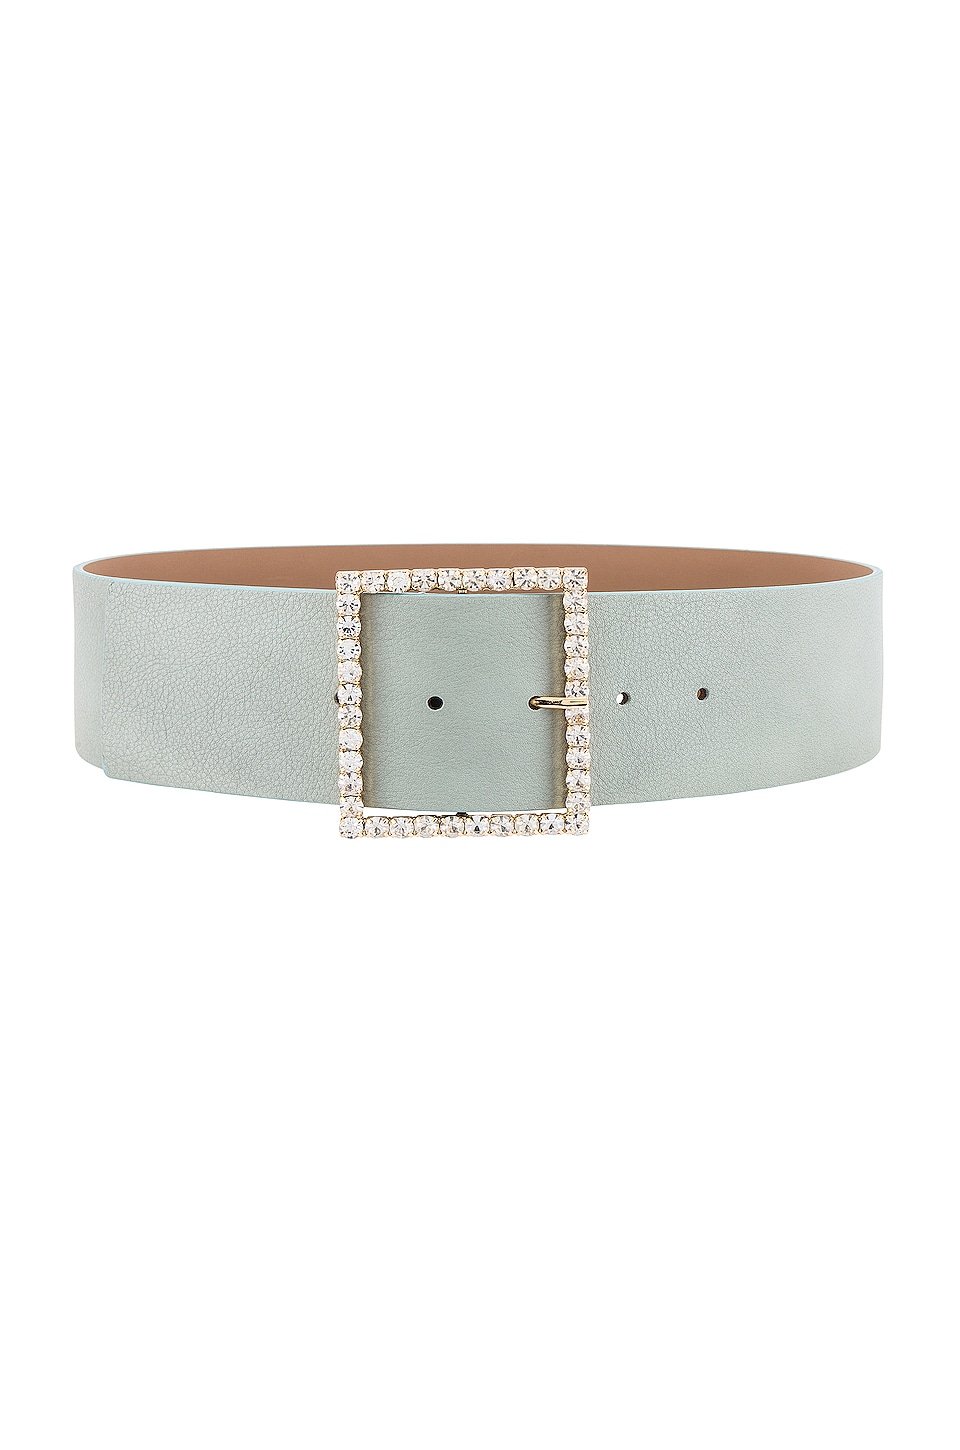 B-Low the Belt Ingrid Belt in Mint & Gold